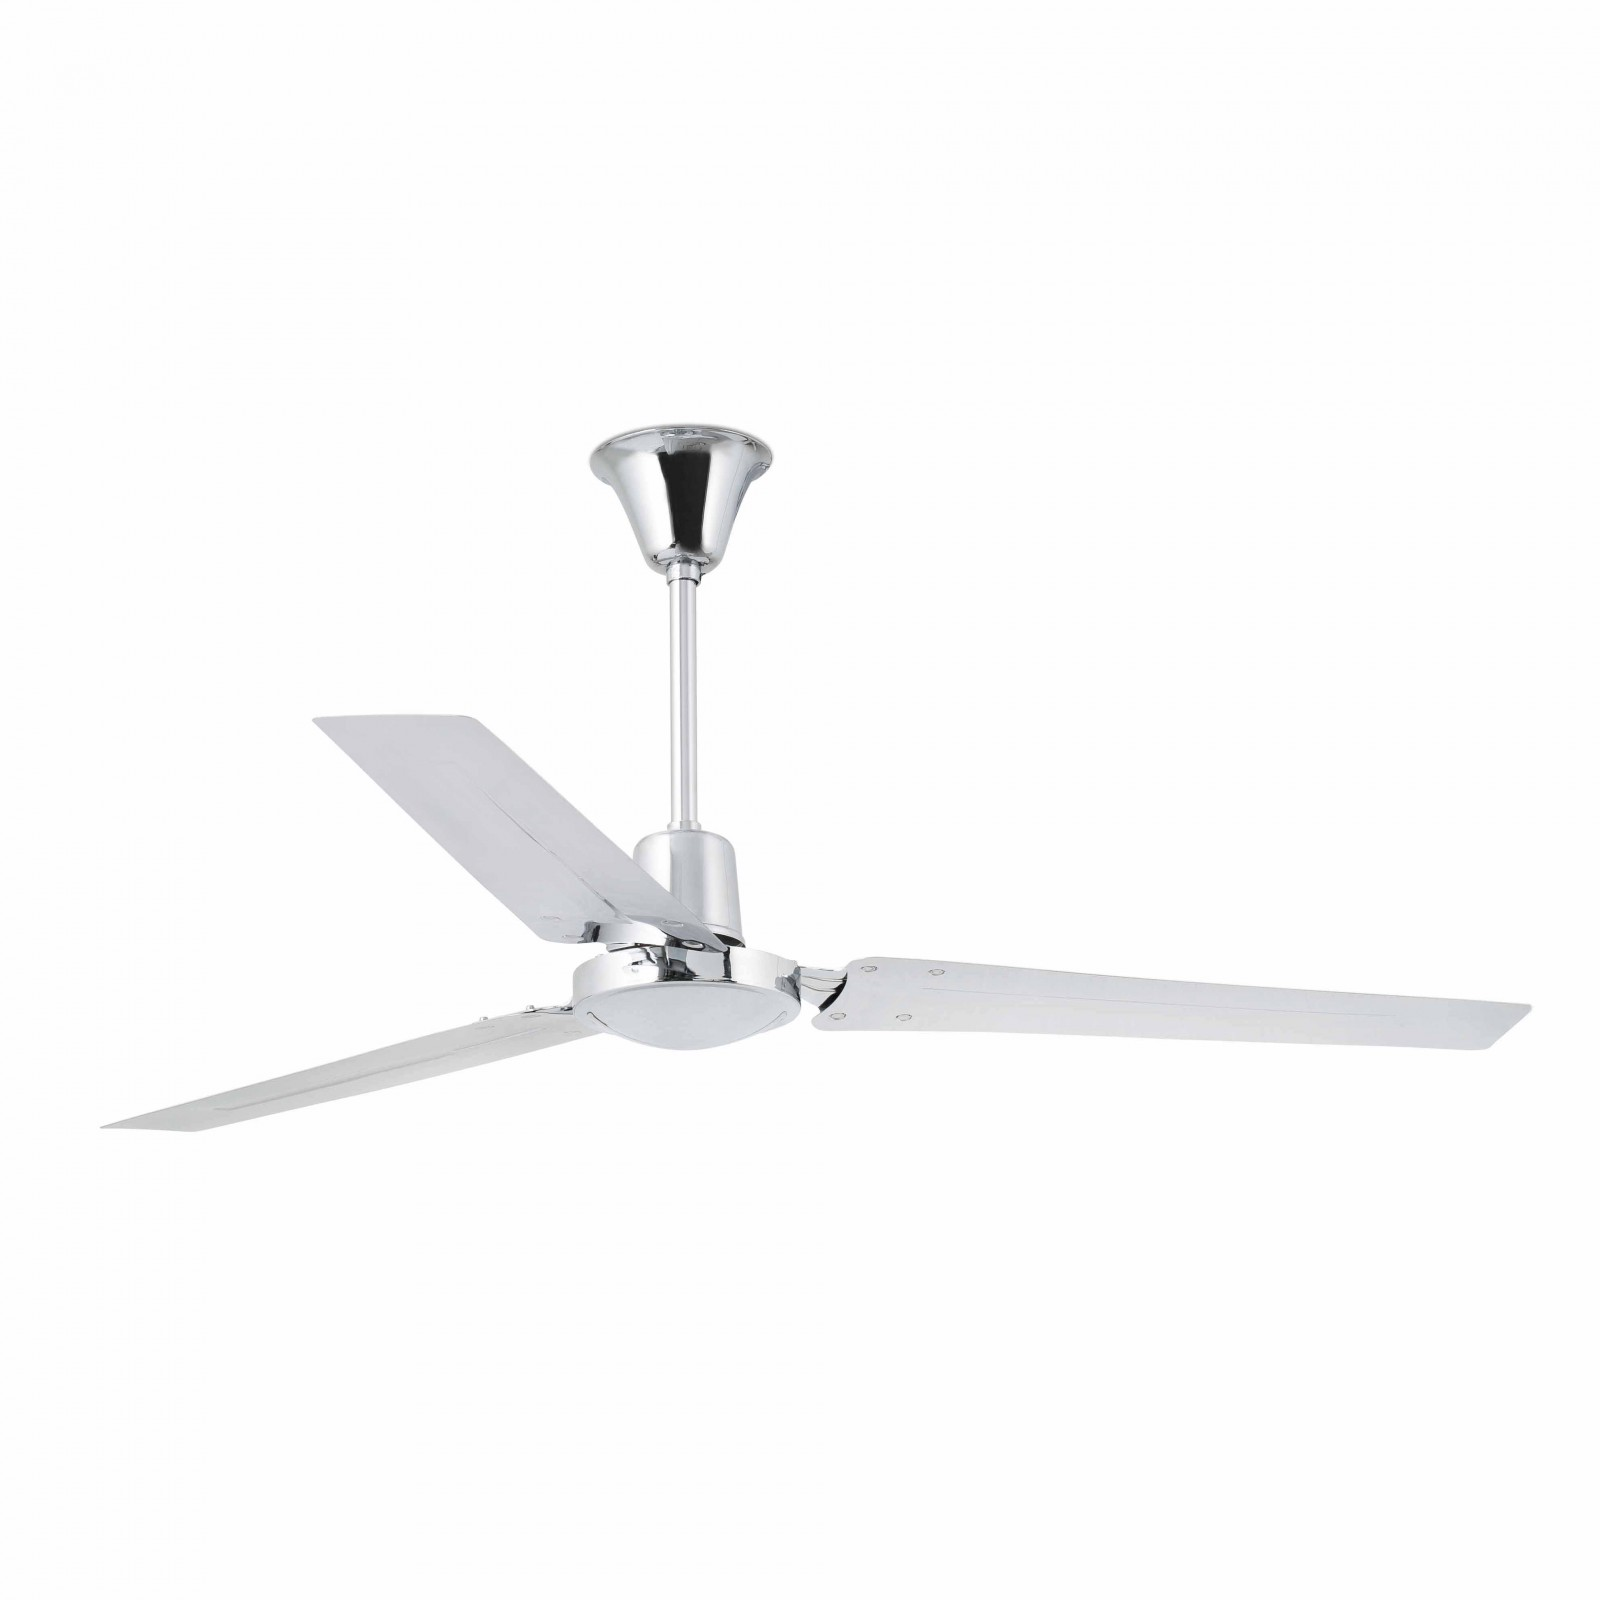 "Faro ceiling fan Indus Chrome 140 cm / 55"" with wall control Ceiling ..."